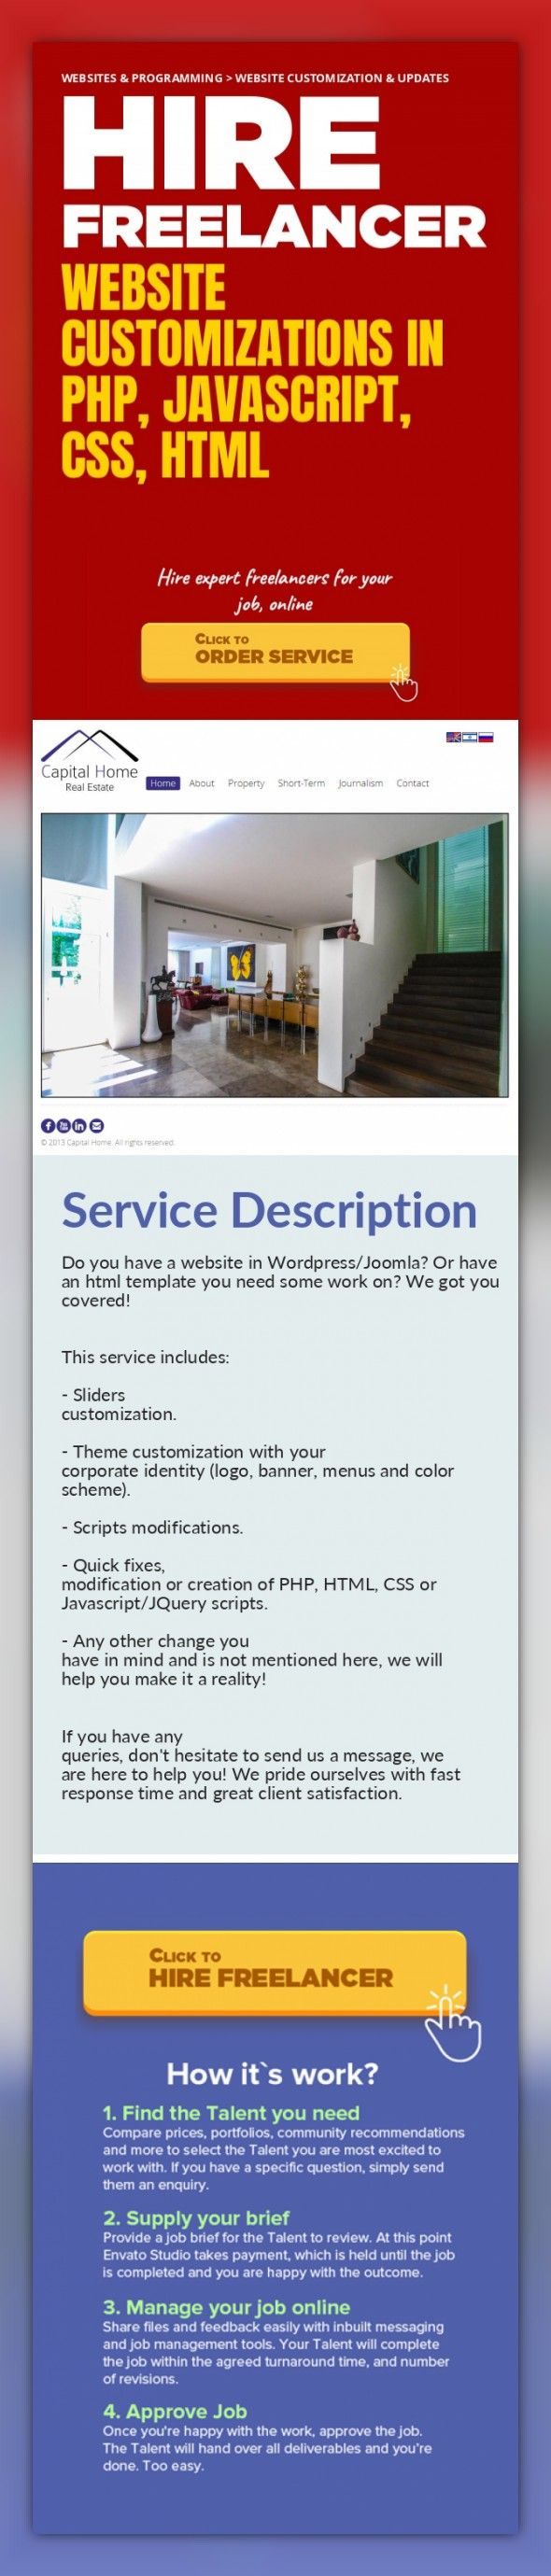 Website Customizations in PHP, JavaScript, CSS, HTML Websites & Programming, Website Customization & Updates   Do you have a website in Wordpress/Joomla? Or have an html template you need some work on? We got you covered!   This service includes:   - Sliders customization.  - Theme customization with your corporate identity (logo, banner, menus and color scheme).  - Scripts modifications.  - Quick...